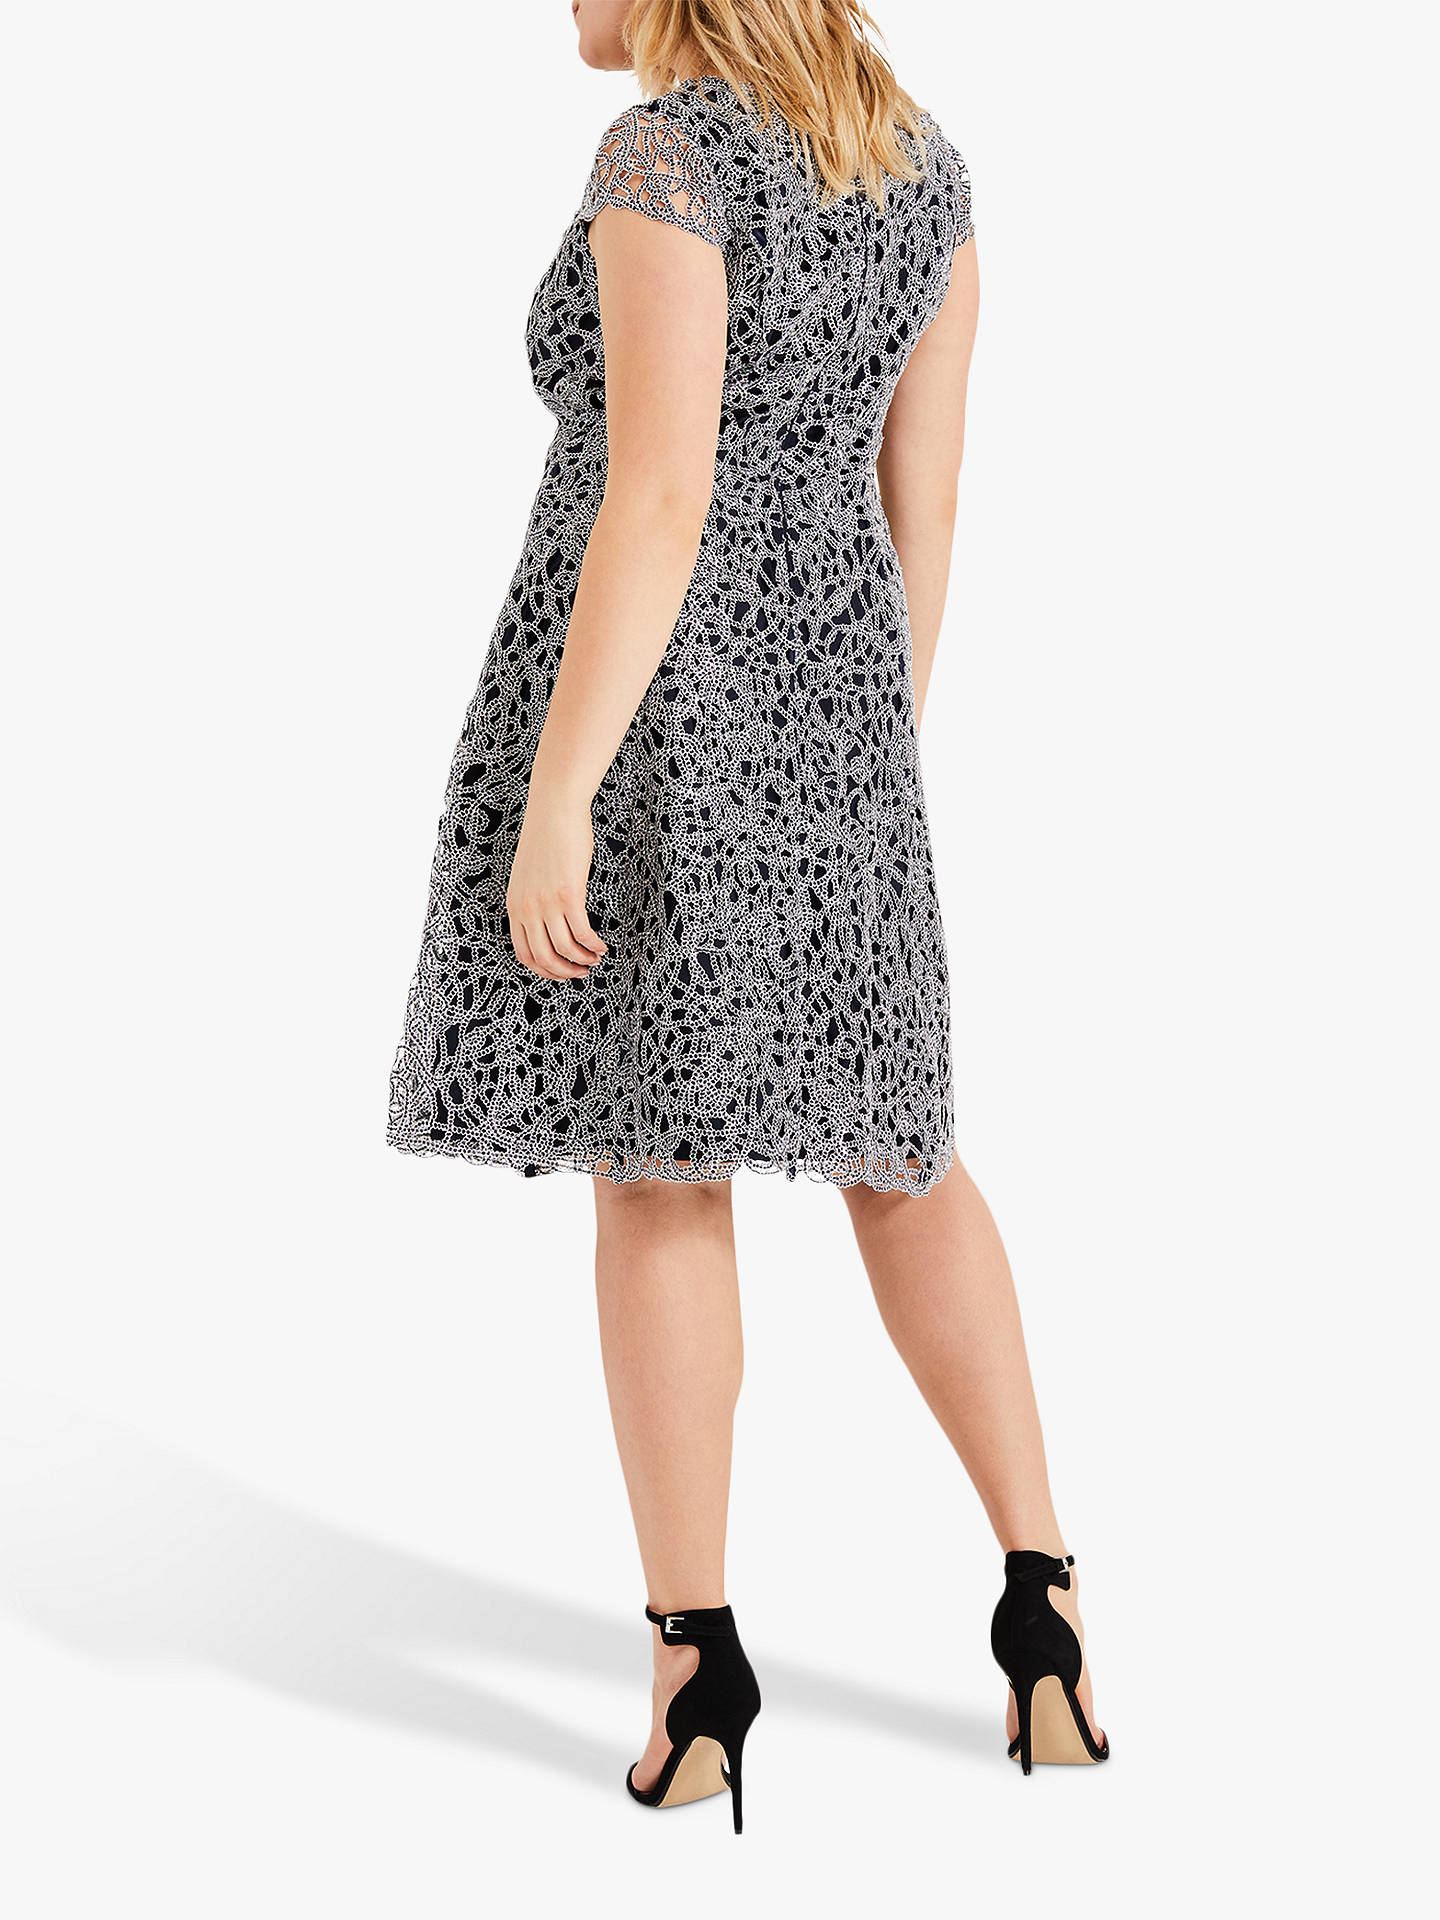 Buy Studio 8 Fenna Metallic Dress, Navy/Silver, 16 Online at johnlewis.com